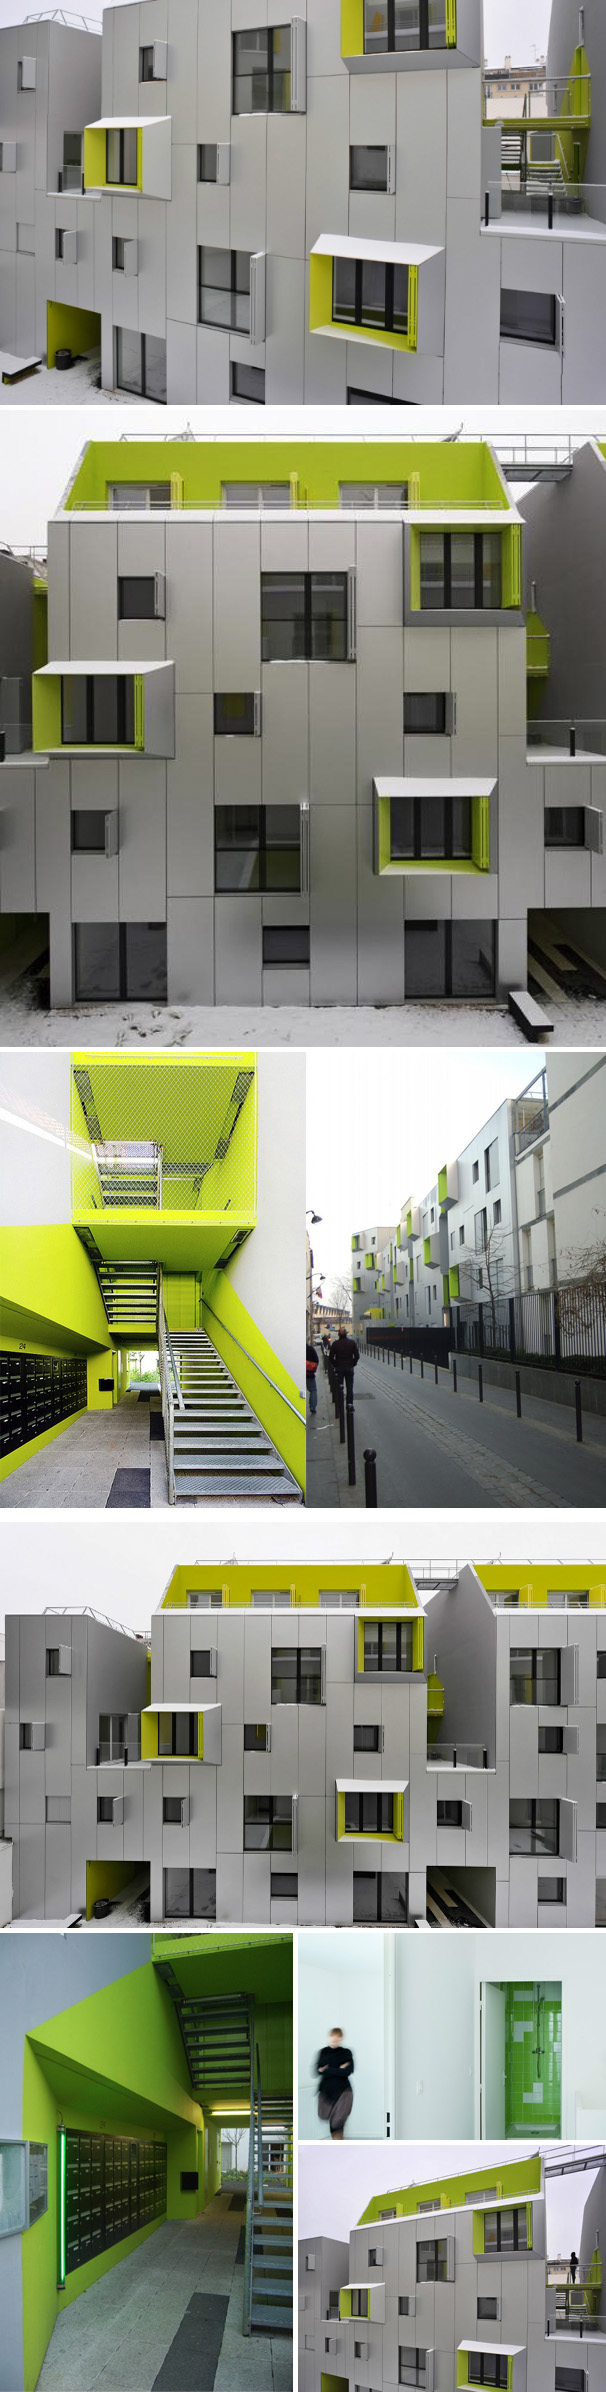 X-tu architects, social housing, Paris, modern architecture, collabcubed